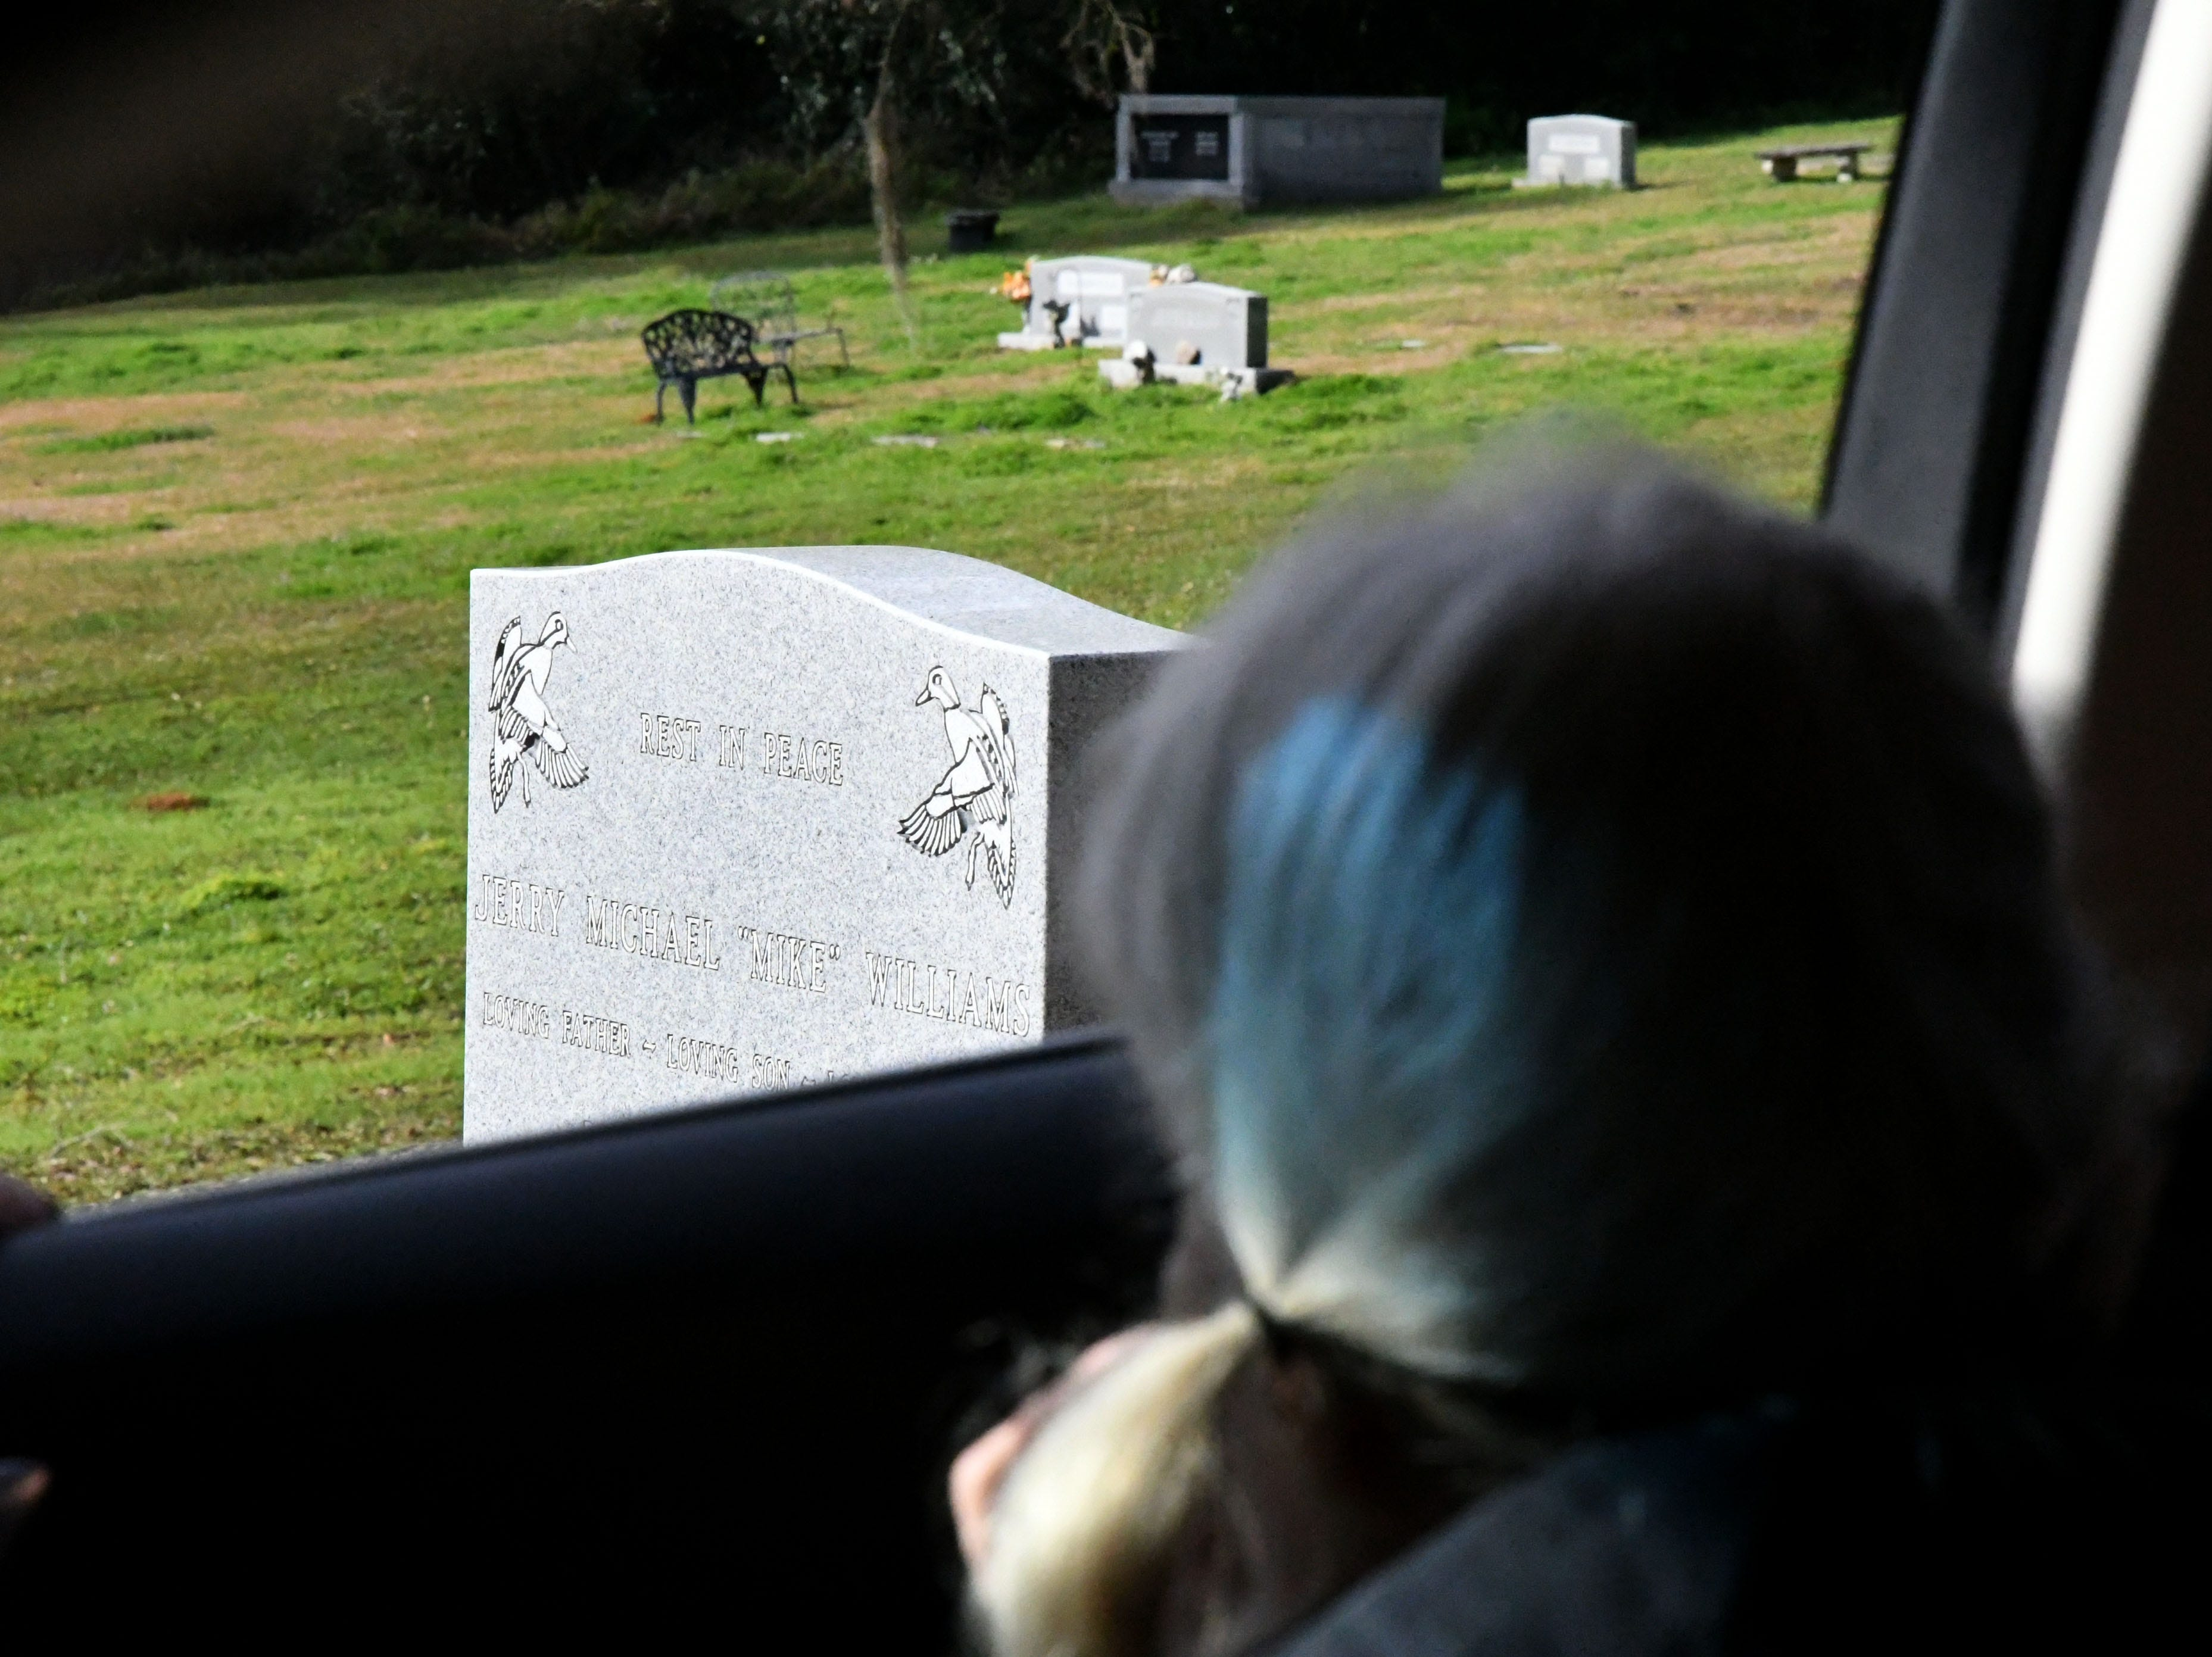 Cheryl Williams, mother of Mike Williams, the man who was murdered over 18 years ago, looks out from the passenger side car window at her son's tombstone, Wednesday Feb. 6, 2019.